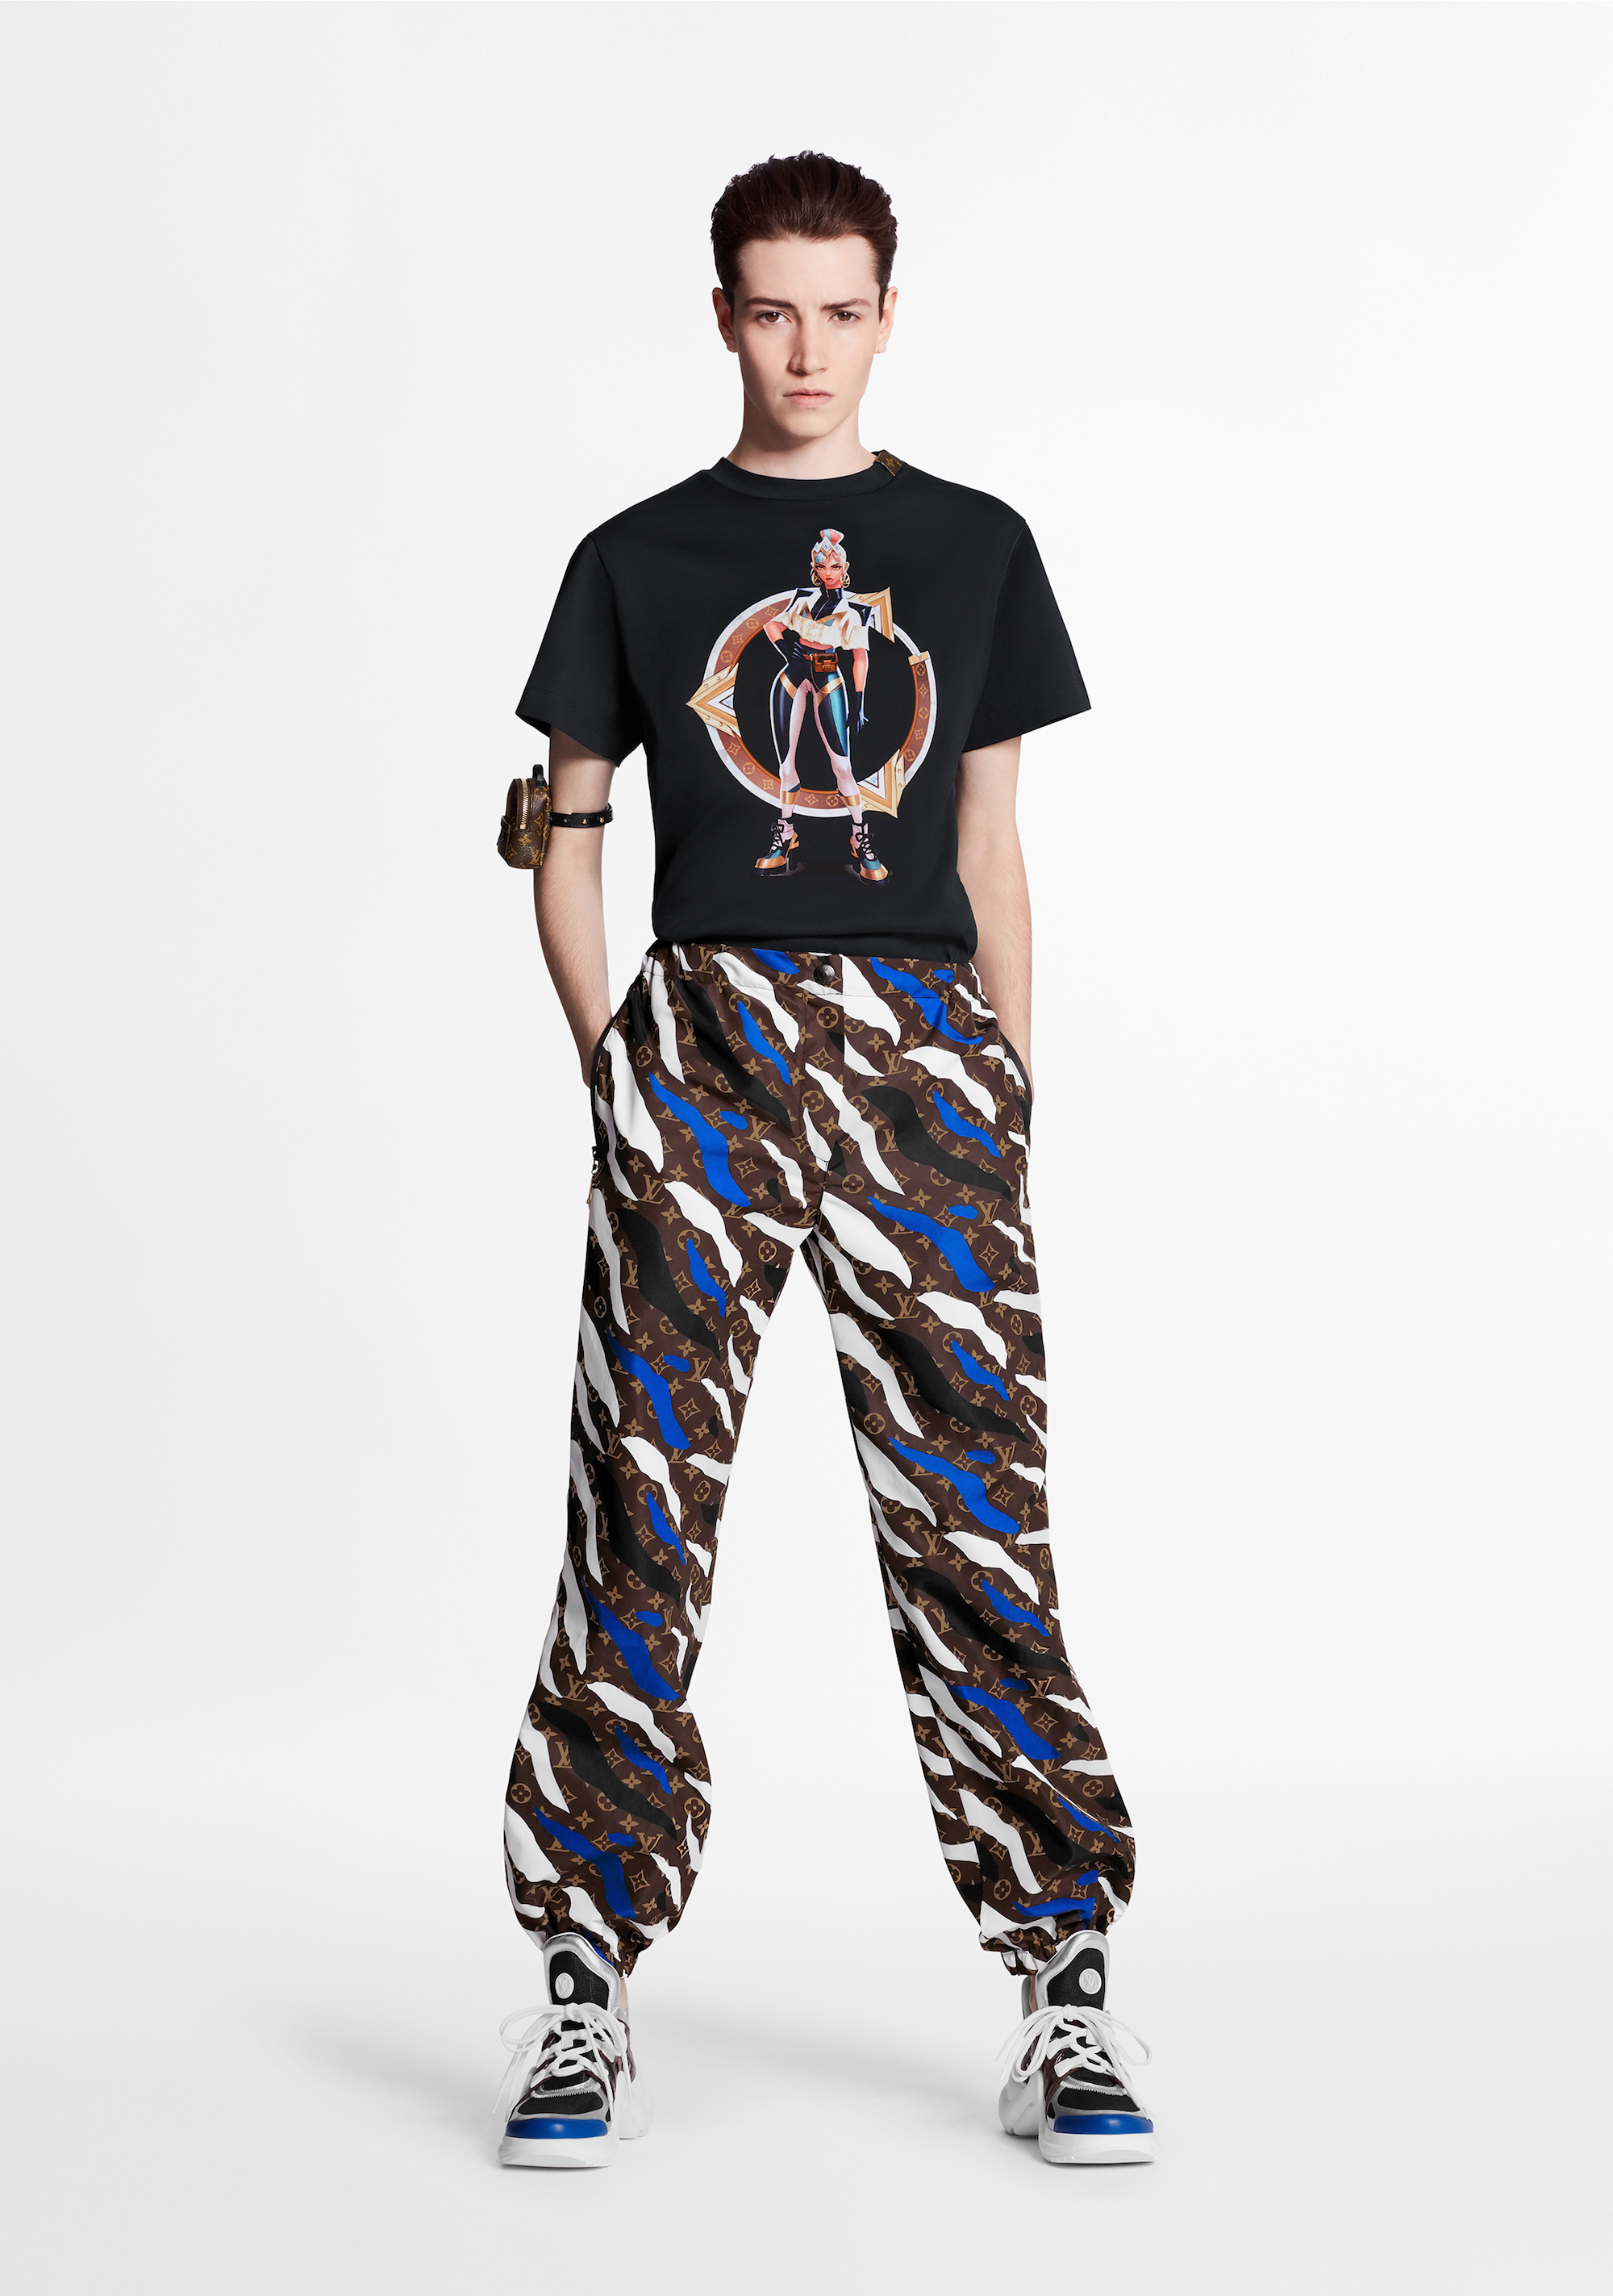 Louis Vuitton x League of Legends capsule collection trousers